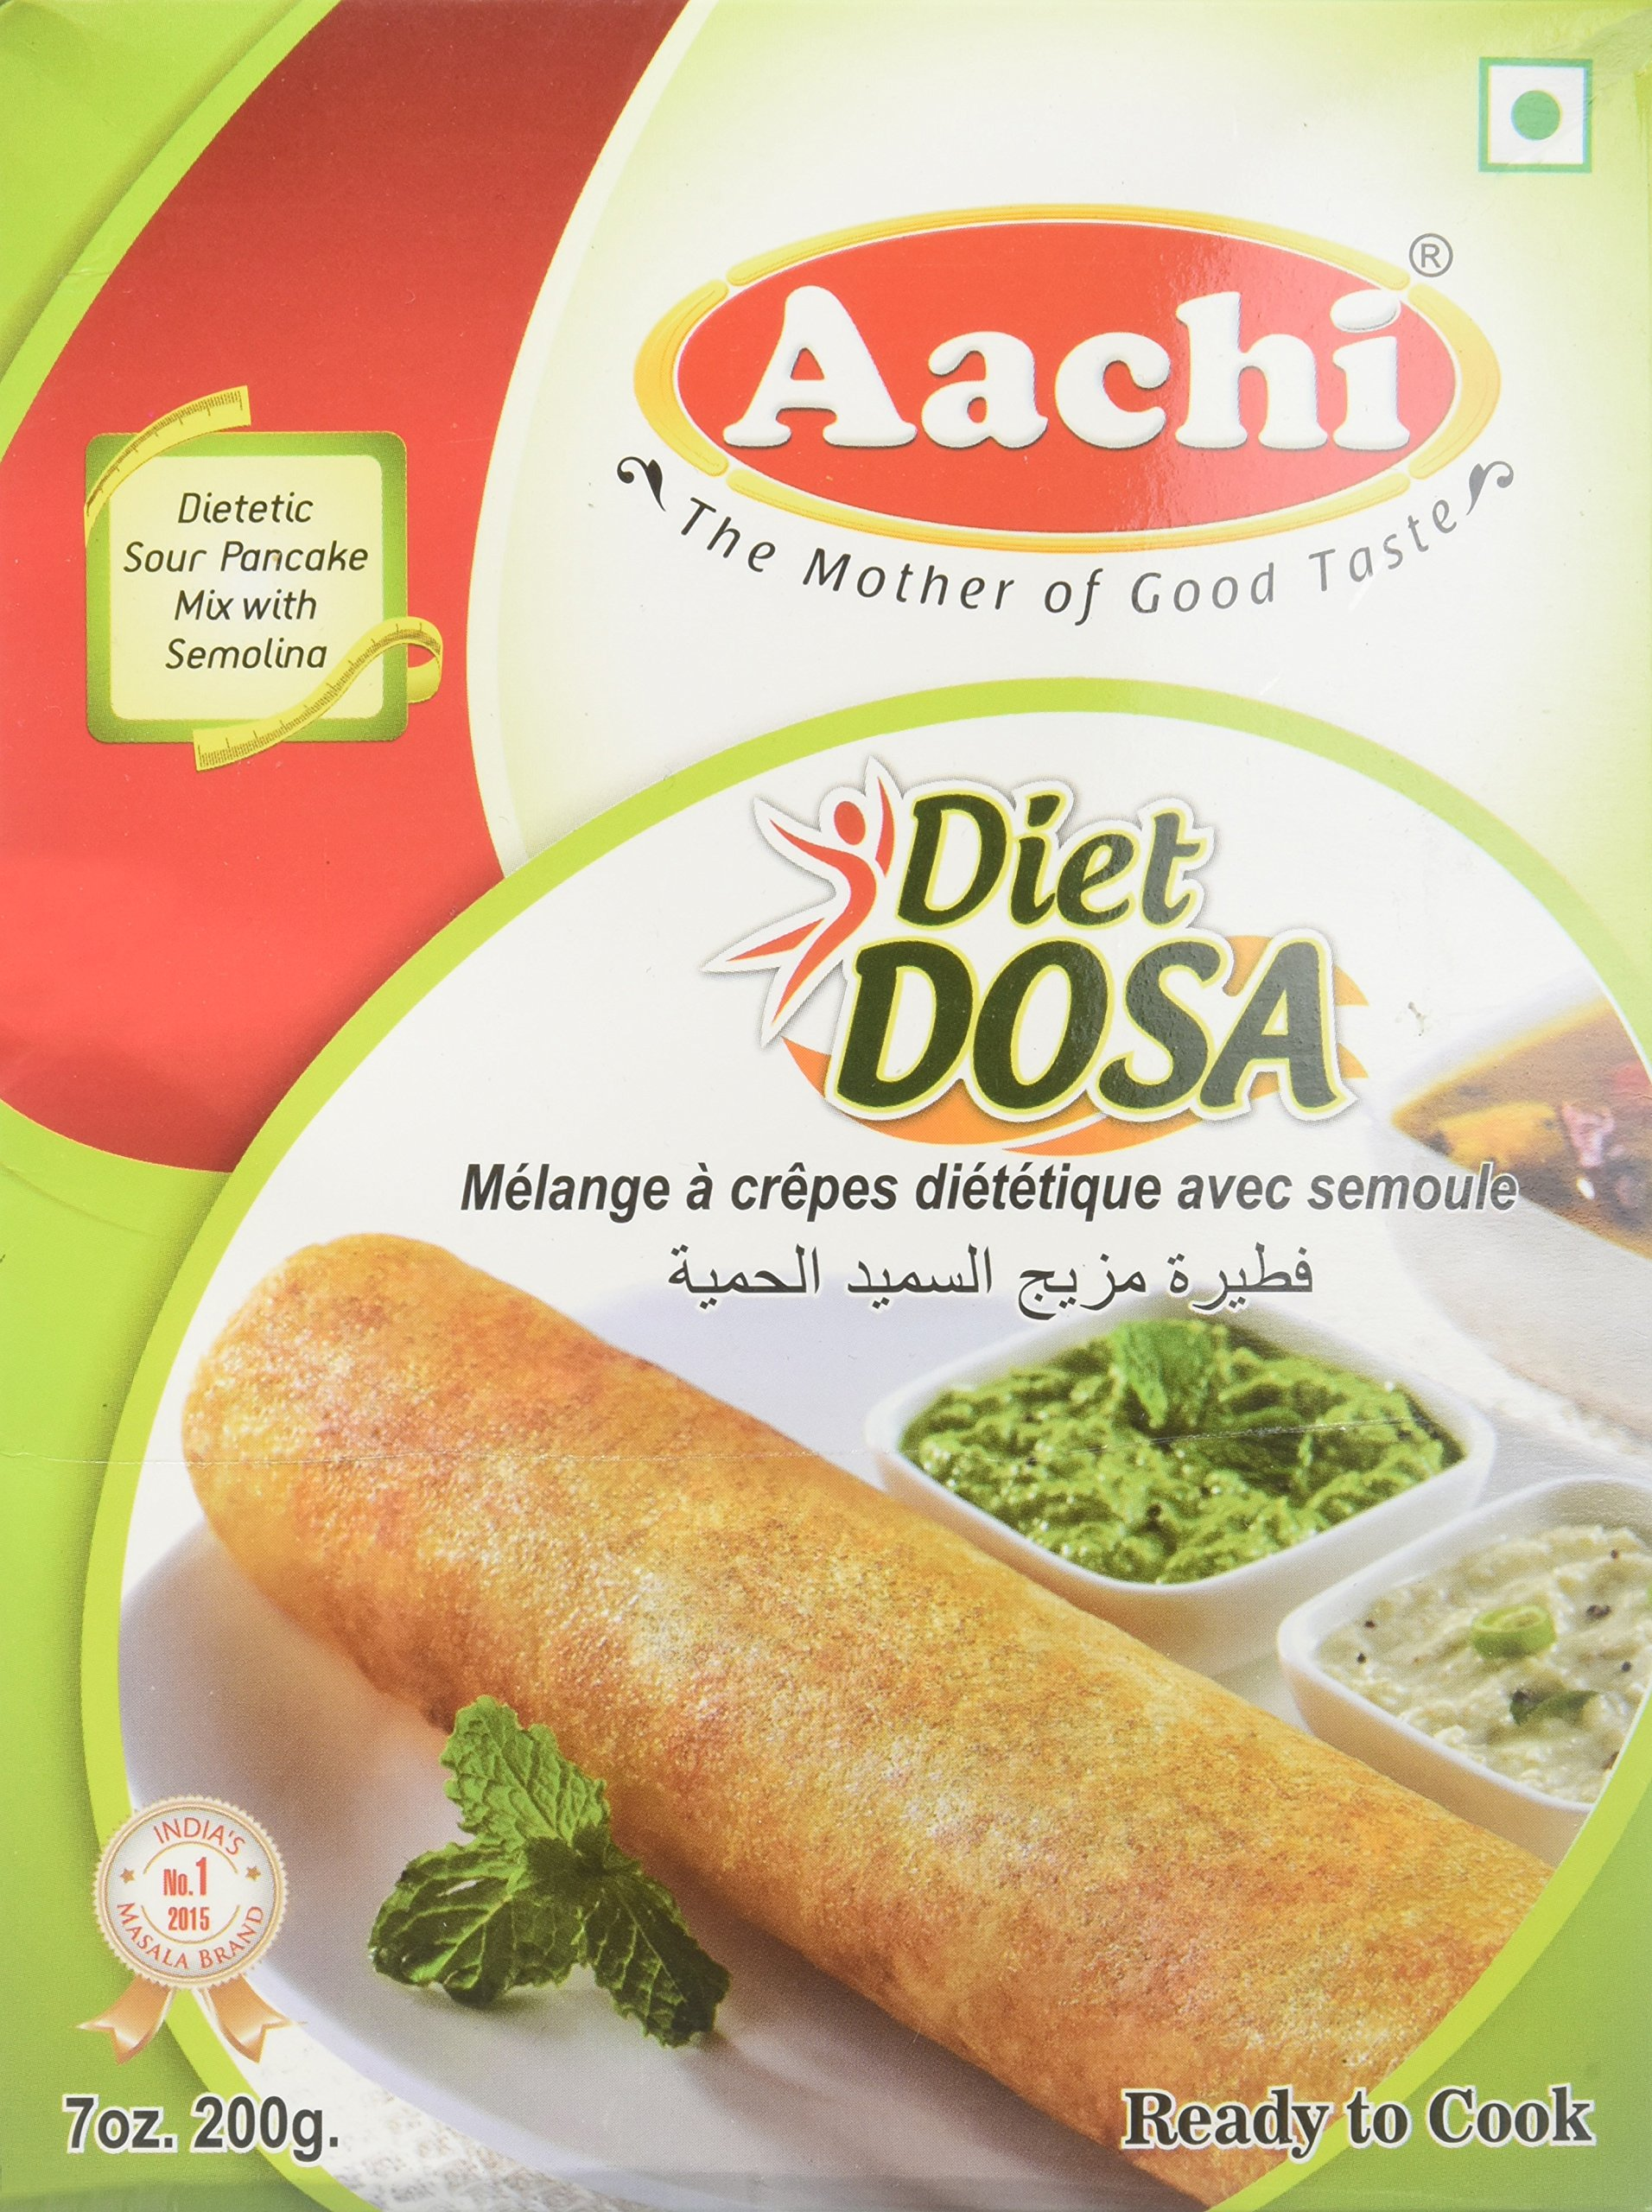 Aachi Diet Dosa, Dietetic Sour Pancake Mix with Semolina, 7 oz by Aachi